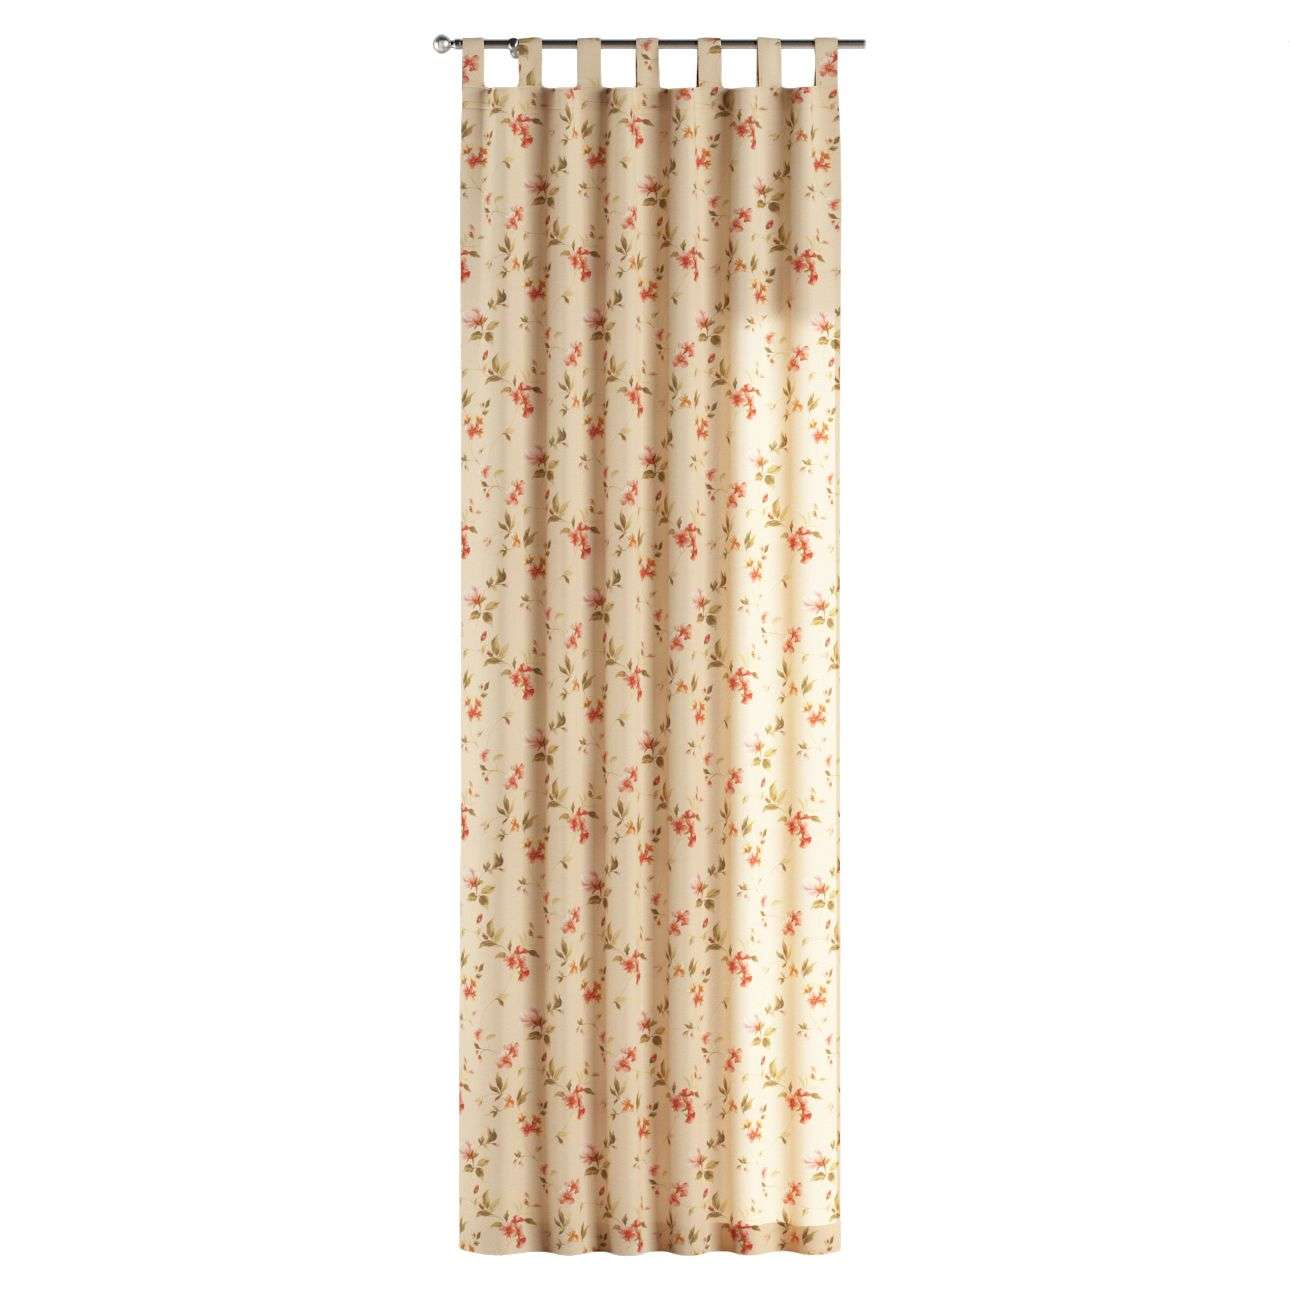 Tab top curtains 130 x 260 cm (51 x 102 inch) in collection Londres, fabric: 124-05